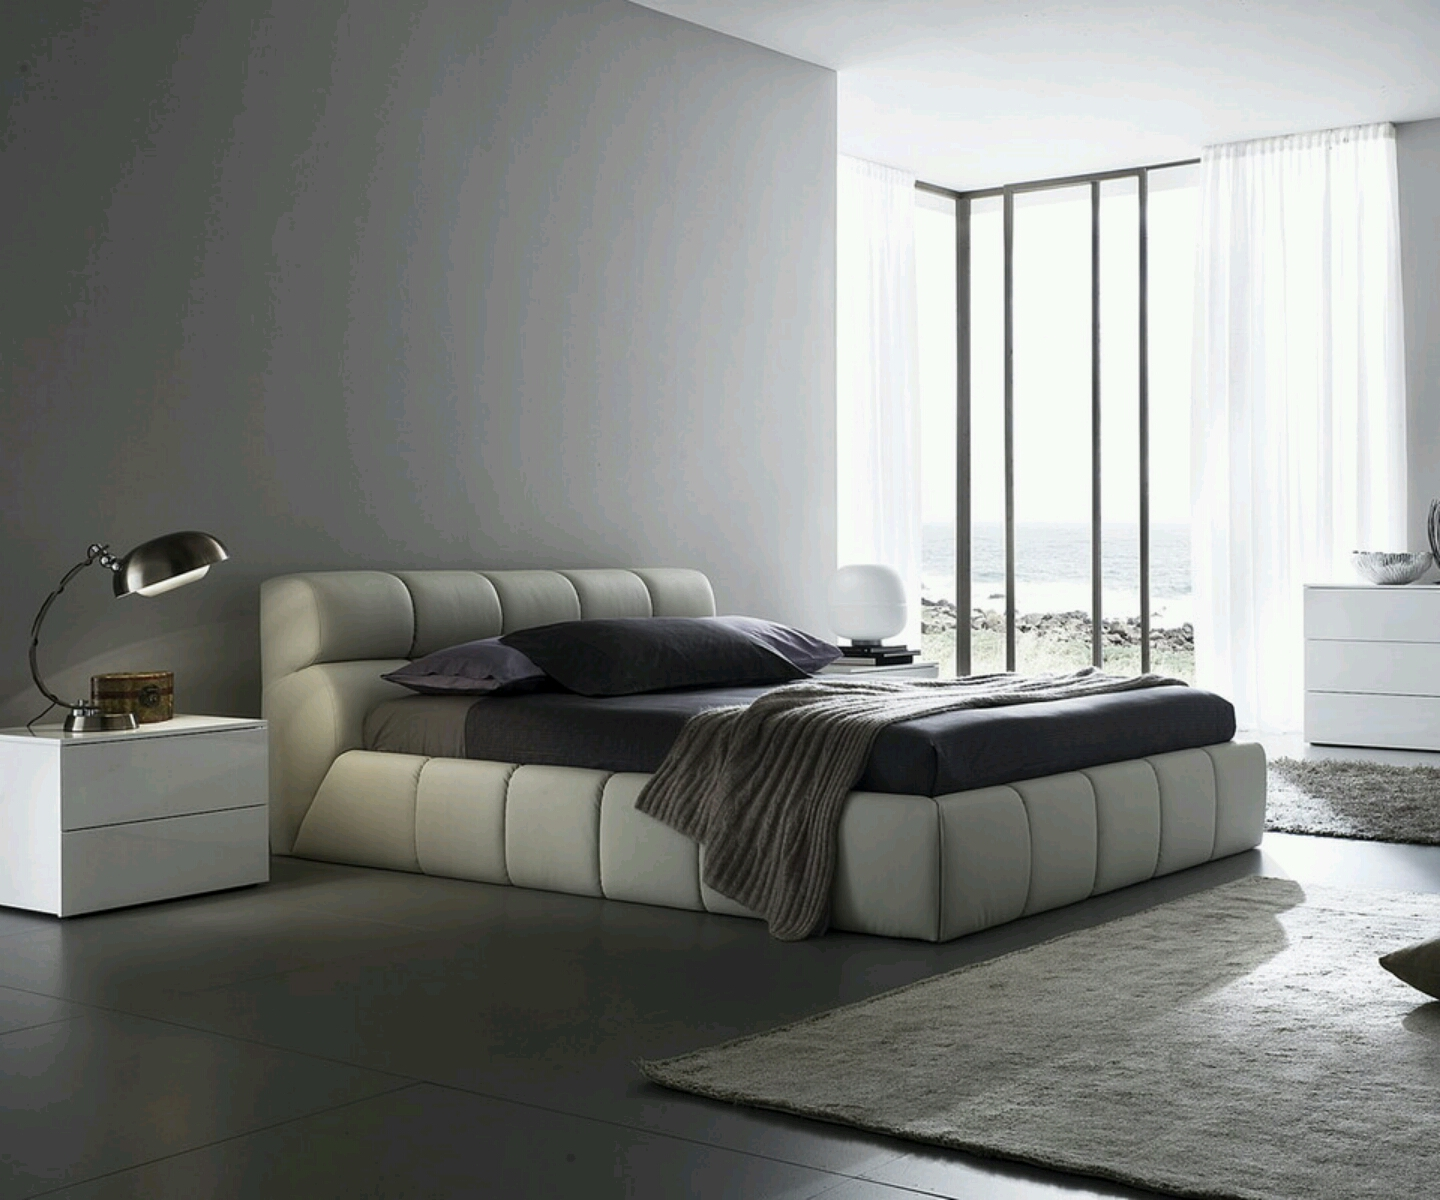 Modern furniture modern bed designs beautiful bedrooms for Beautiful room designs images